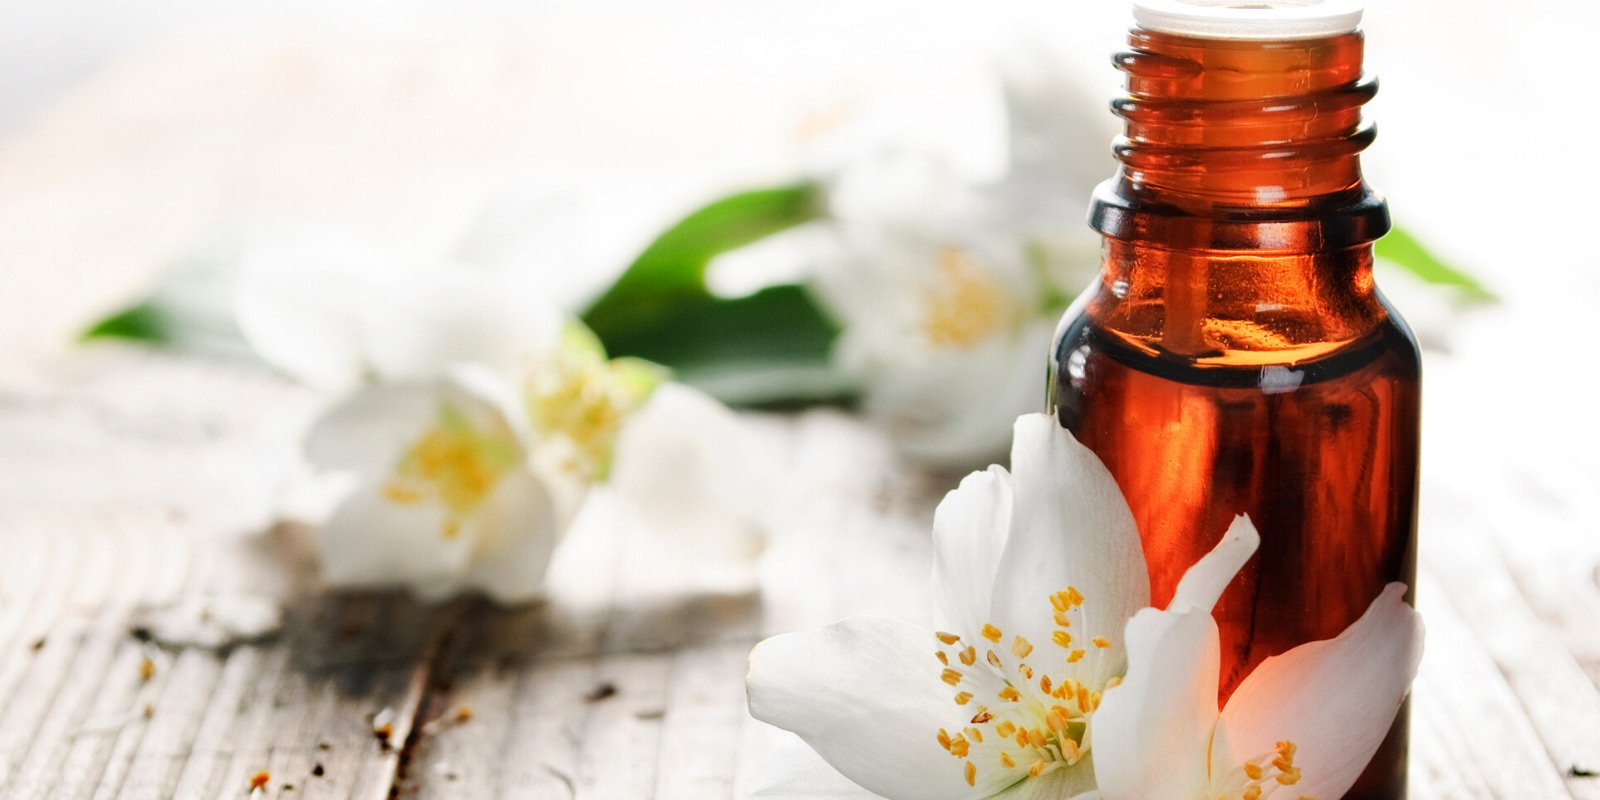 The Top 10 Essential Oils for Stress Relief & How to Use Them (Includes DIY Recipes)